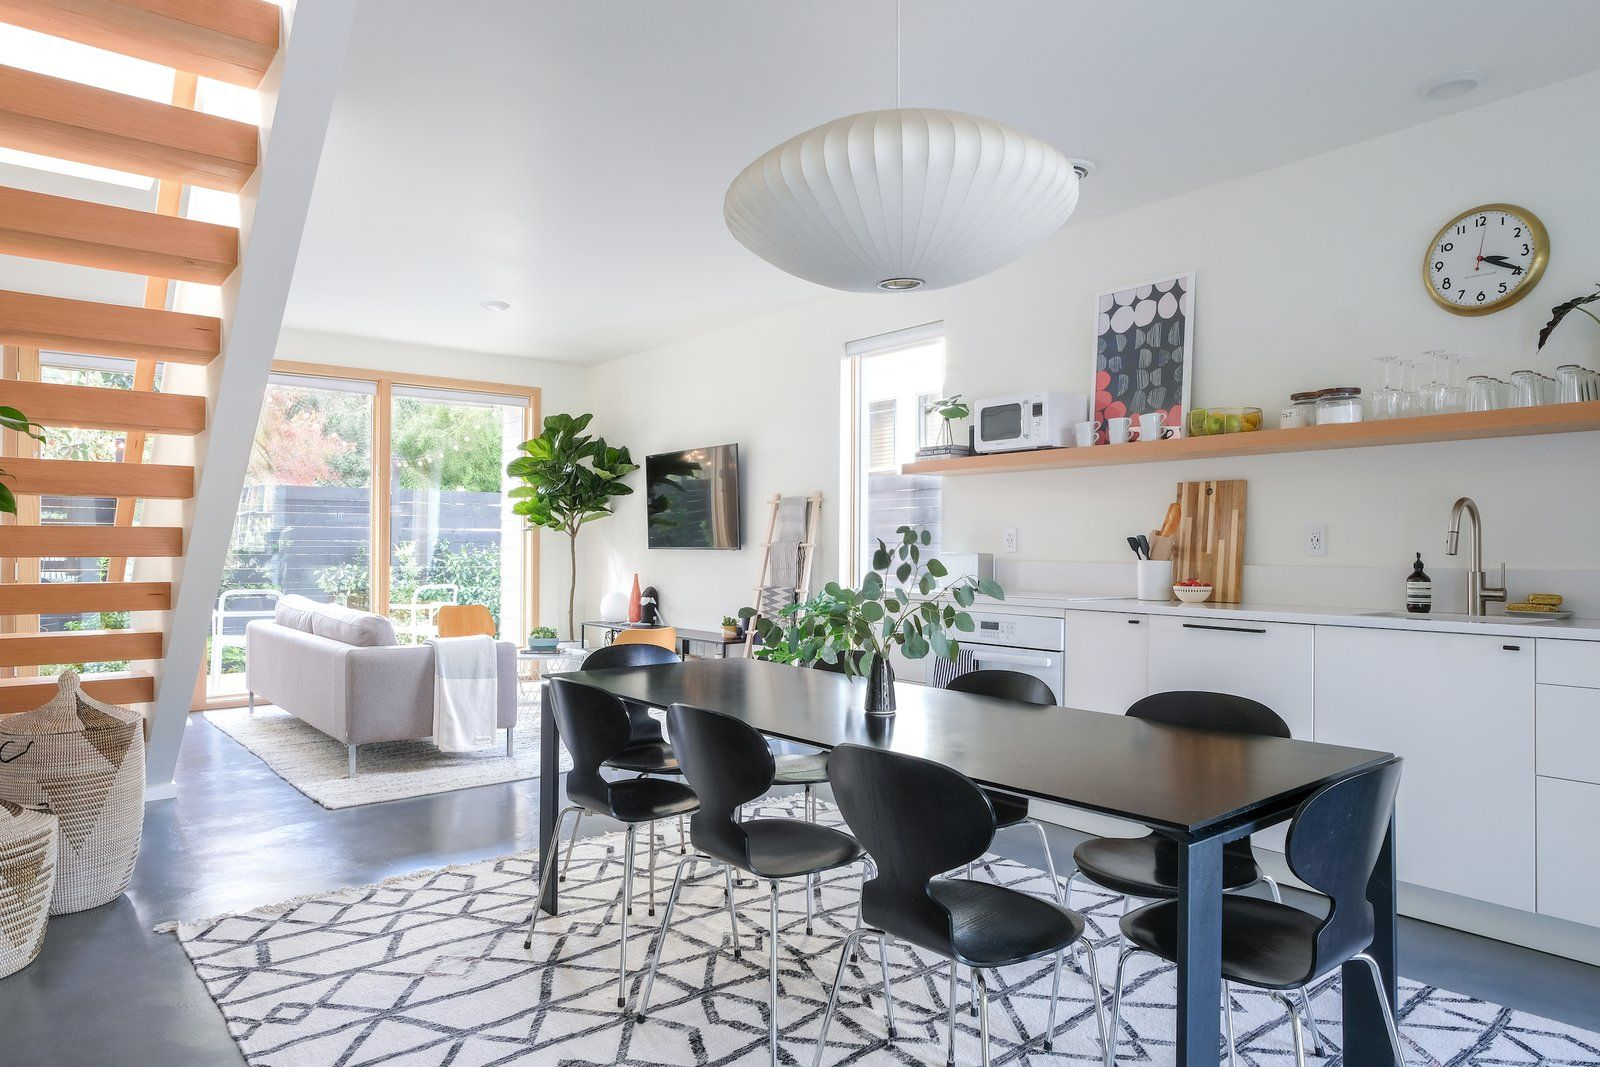 Location portland oregon new modern and bright guest house with